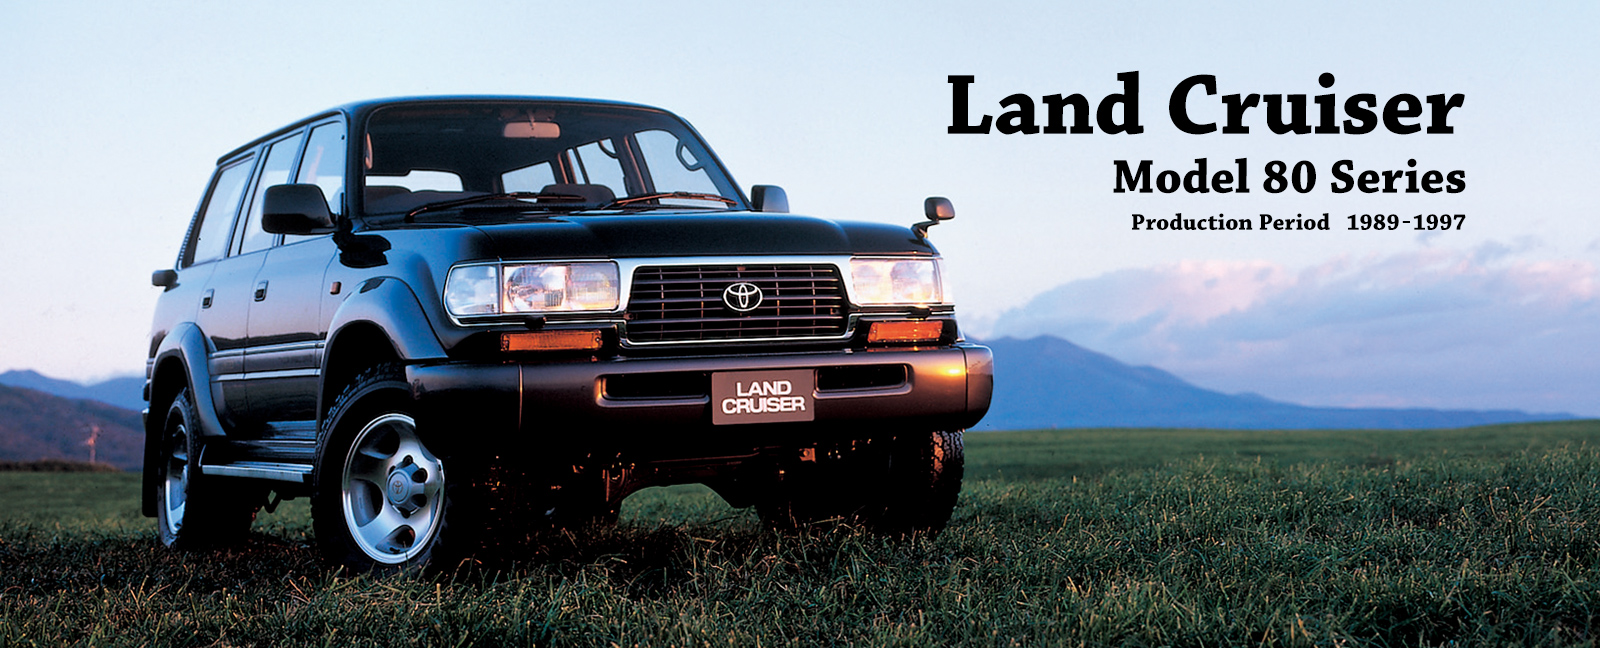 hight resolution of vehicle heritage land cruiser model 80 series